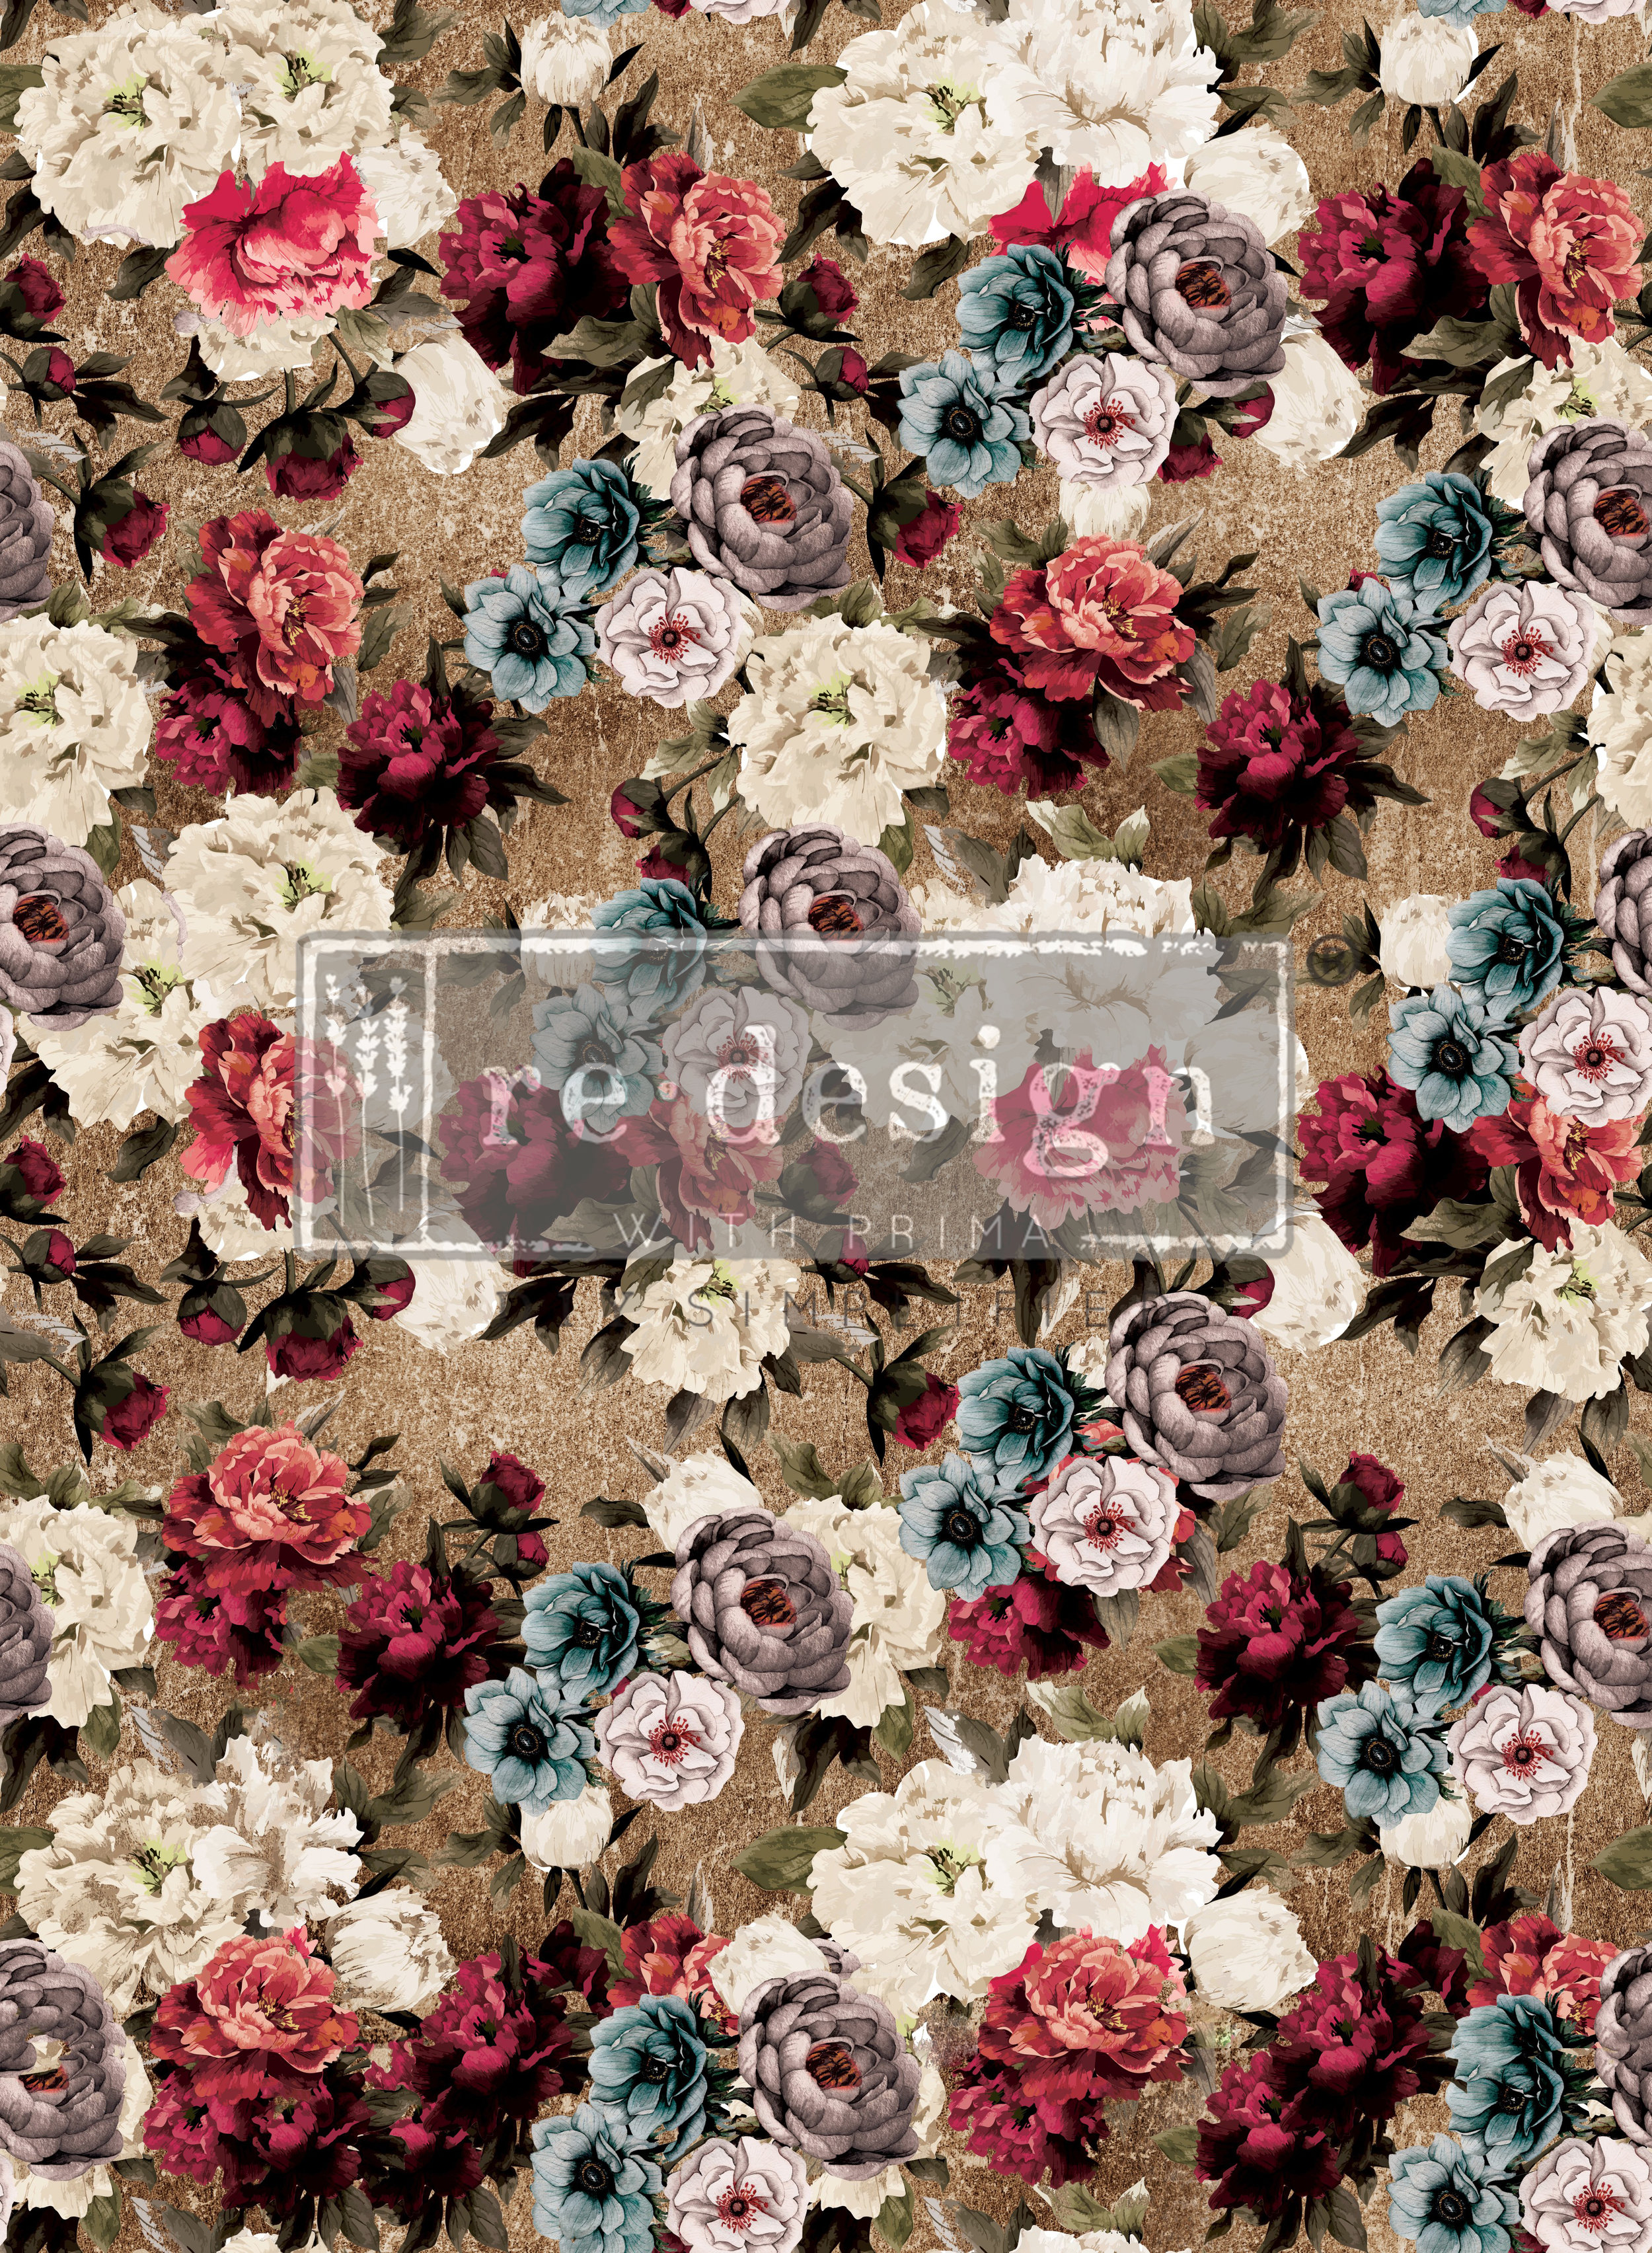 Tea Rose Garden 635442-the size of this transfer all together is 22 x 30 inches.